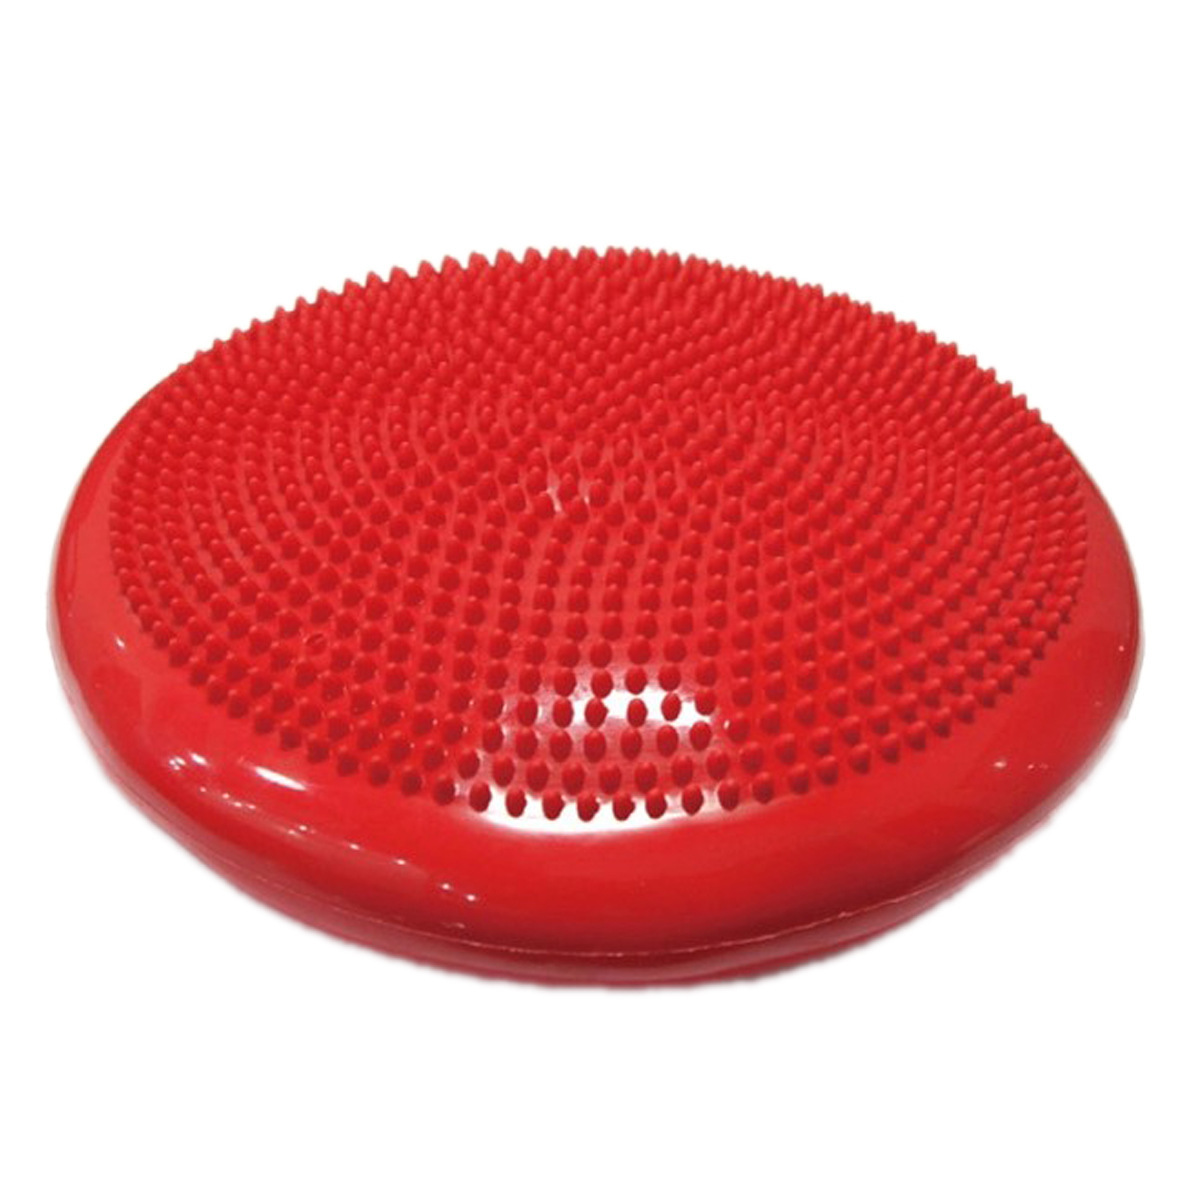 Shanghai Jie Ju 34 Cm PVC Inflatable Balanced Cushion Massage Cushion